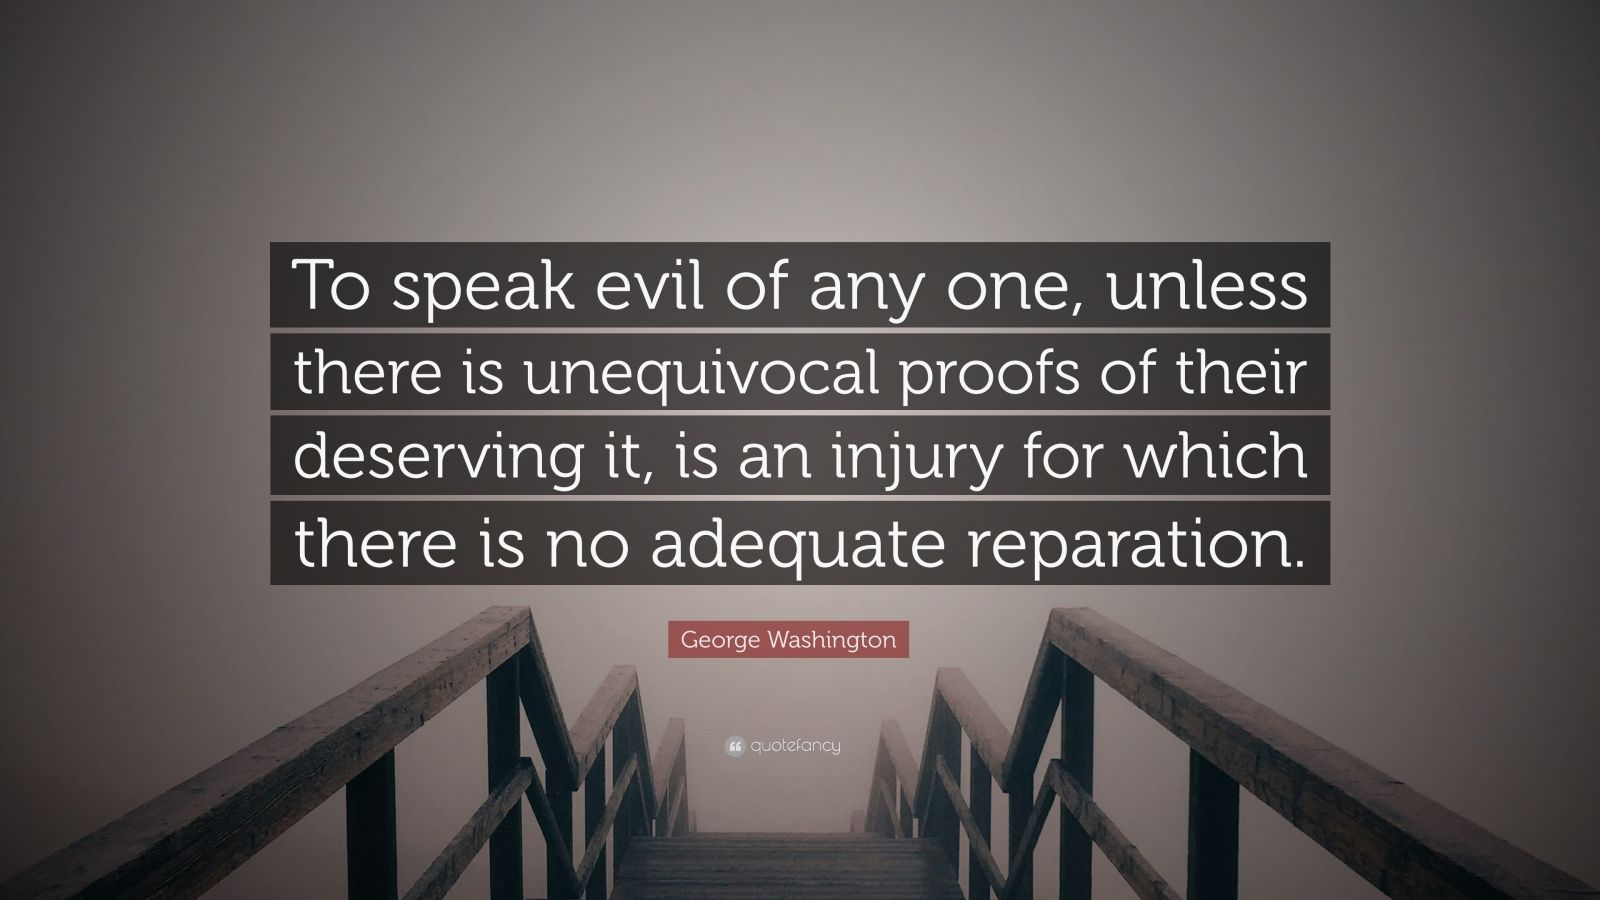 """George Washington Quote: """"To speak evil of any one, unless there is unequivocal proofs of their deserving it, is an injury for which there is no adequate reparation."""""""